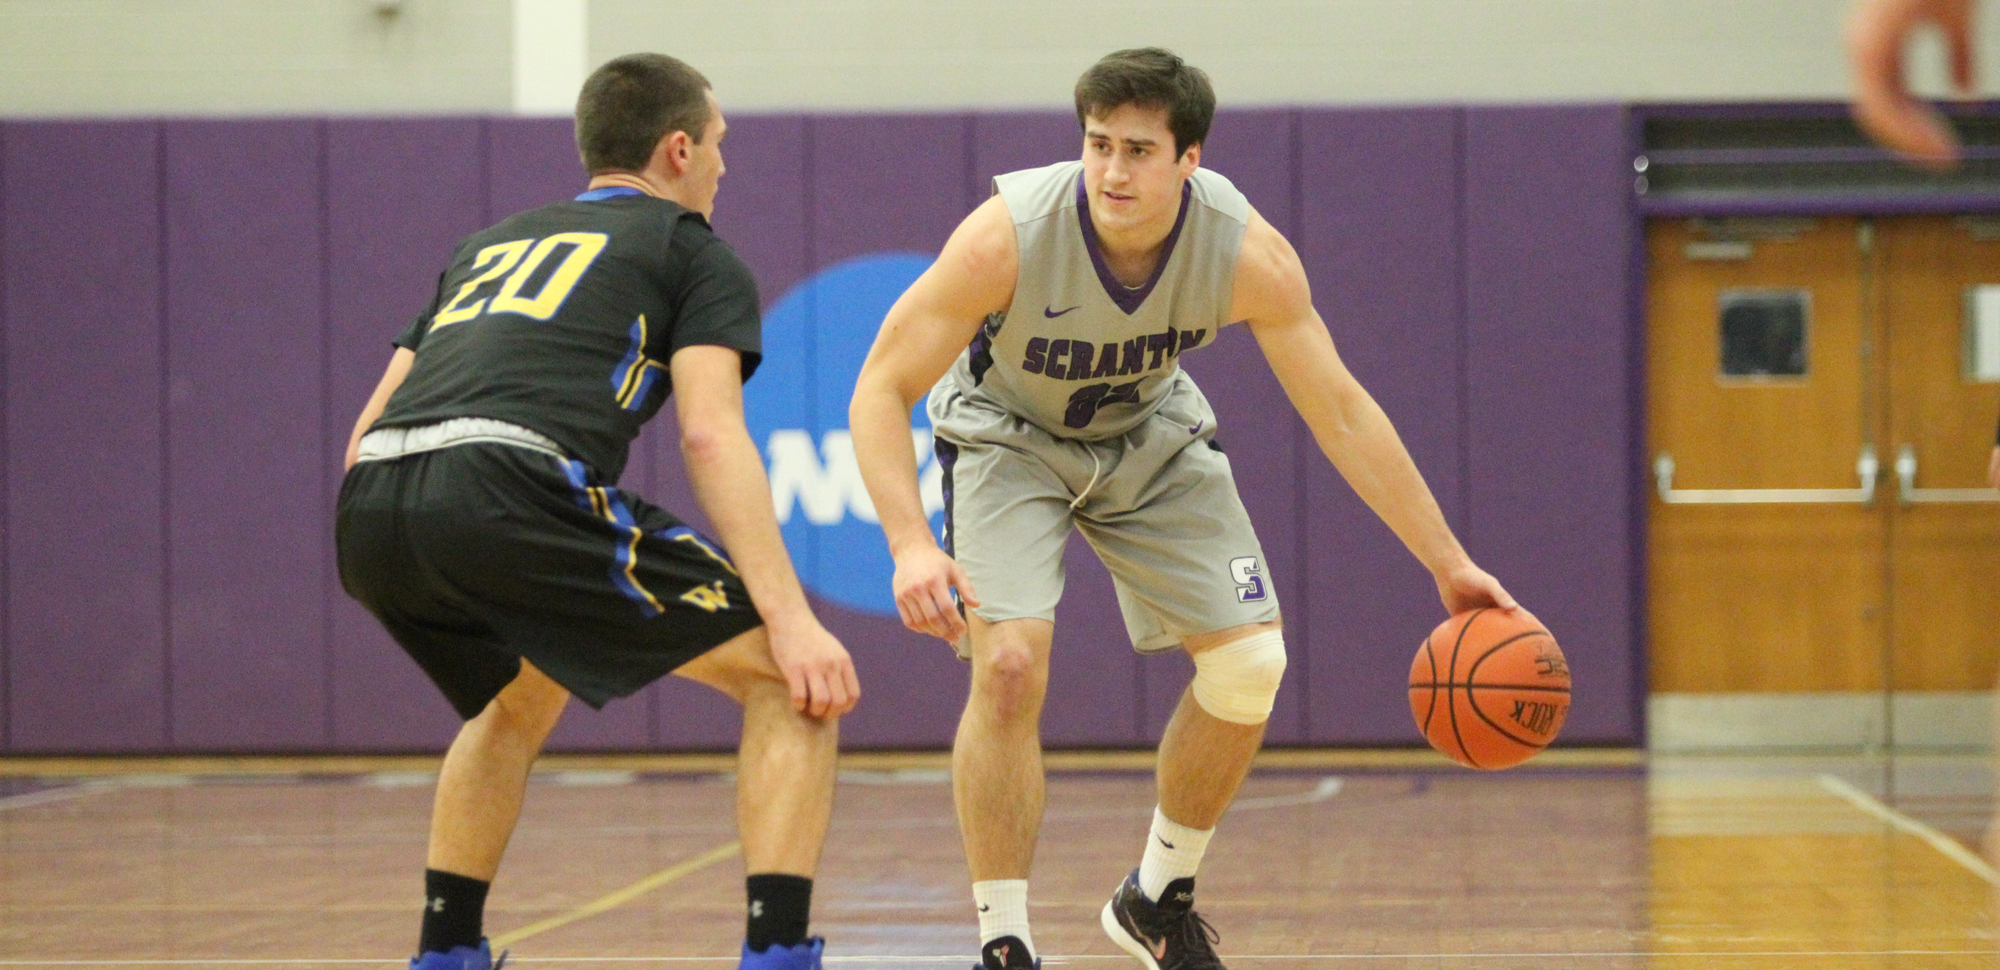 Kyle DeVerna scored 14 points in Scranton's win at York (Pa.) on Wednesday night.